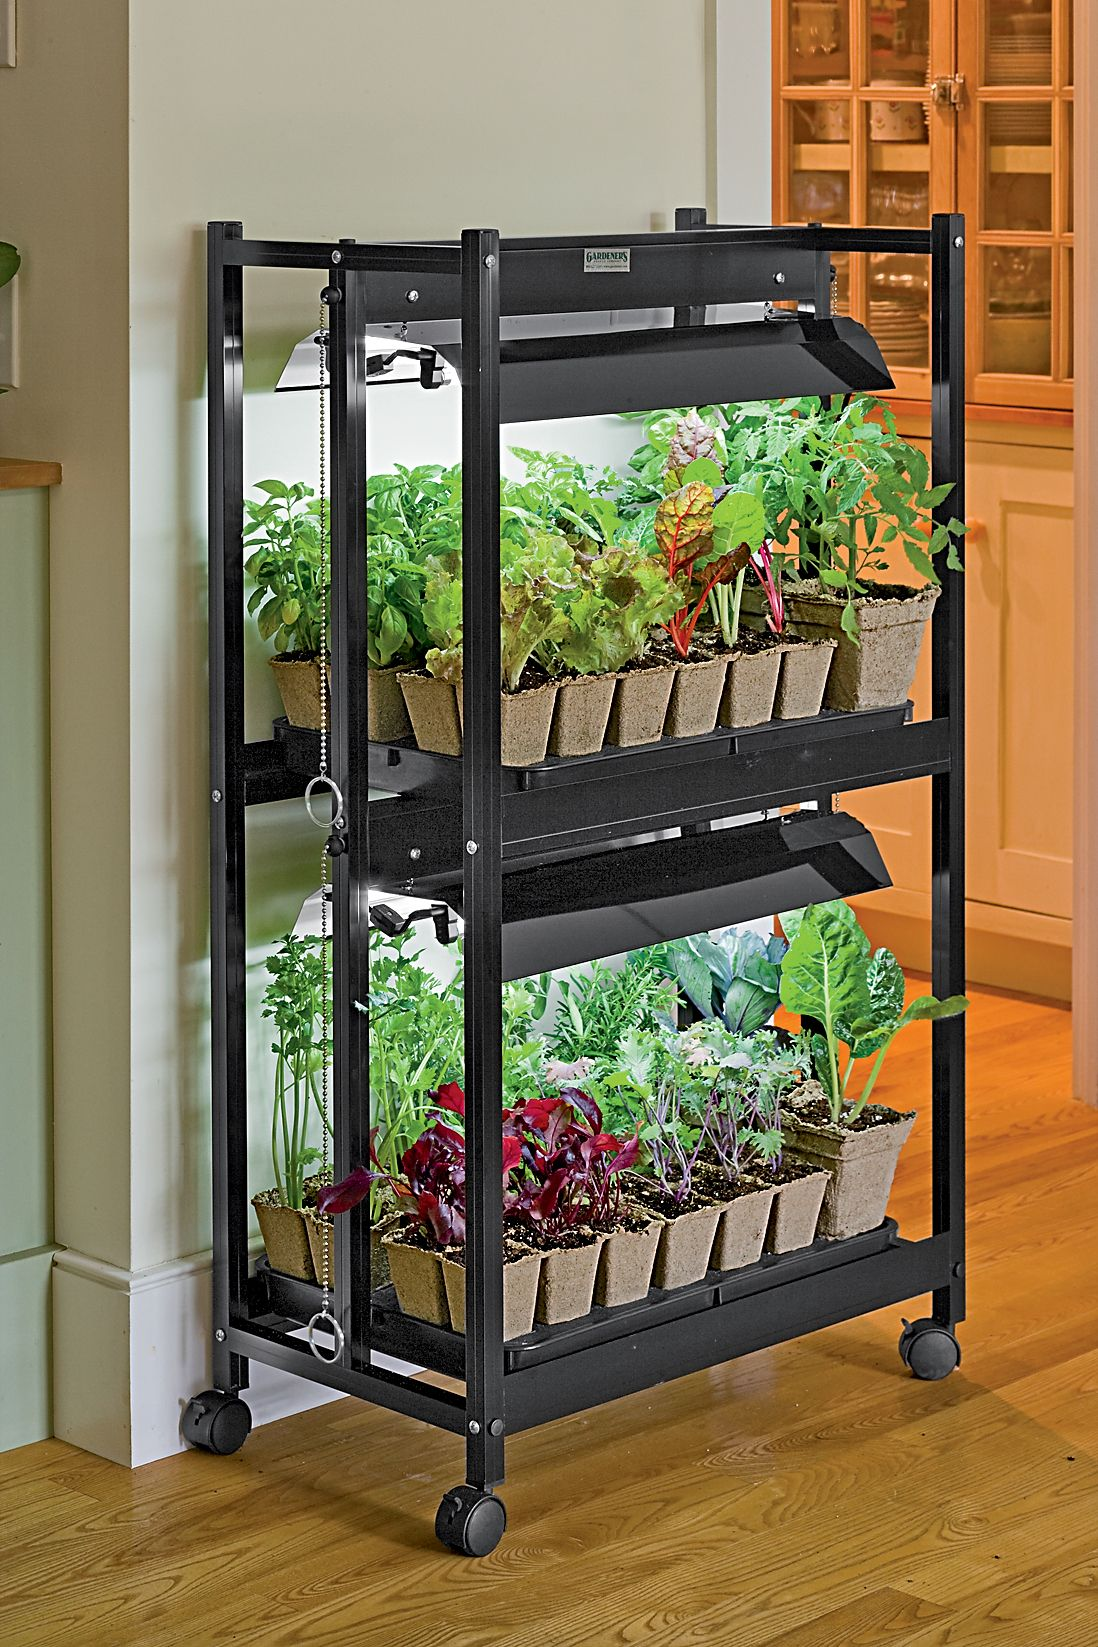 get started growing: 5 easy small vegetable garden ideas to try